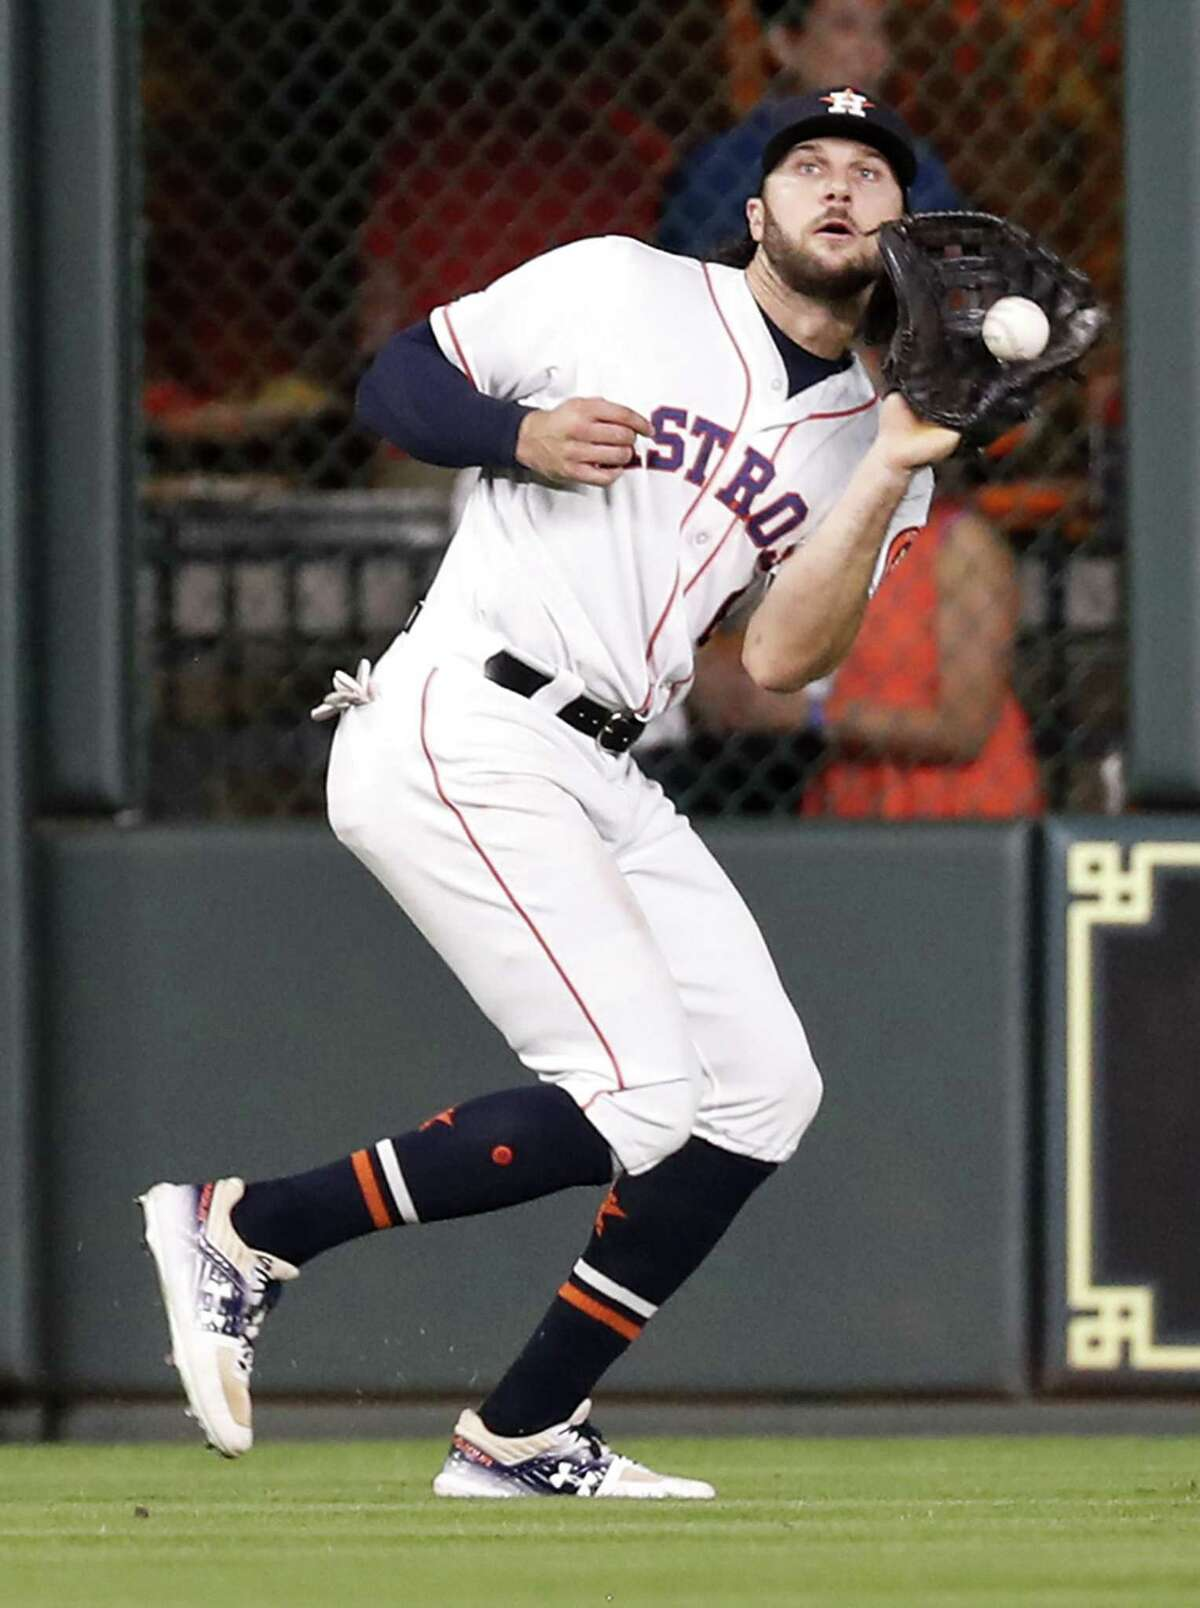 If Marisnick's plate prowess ever approached his fielding skills and earned him everyday duty, his teammates believe he would be a shoo-in for a Gold Glove.